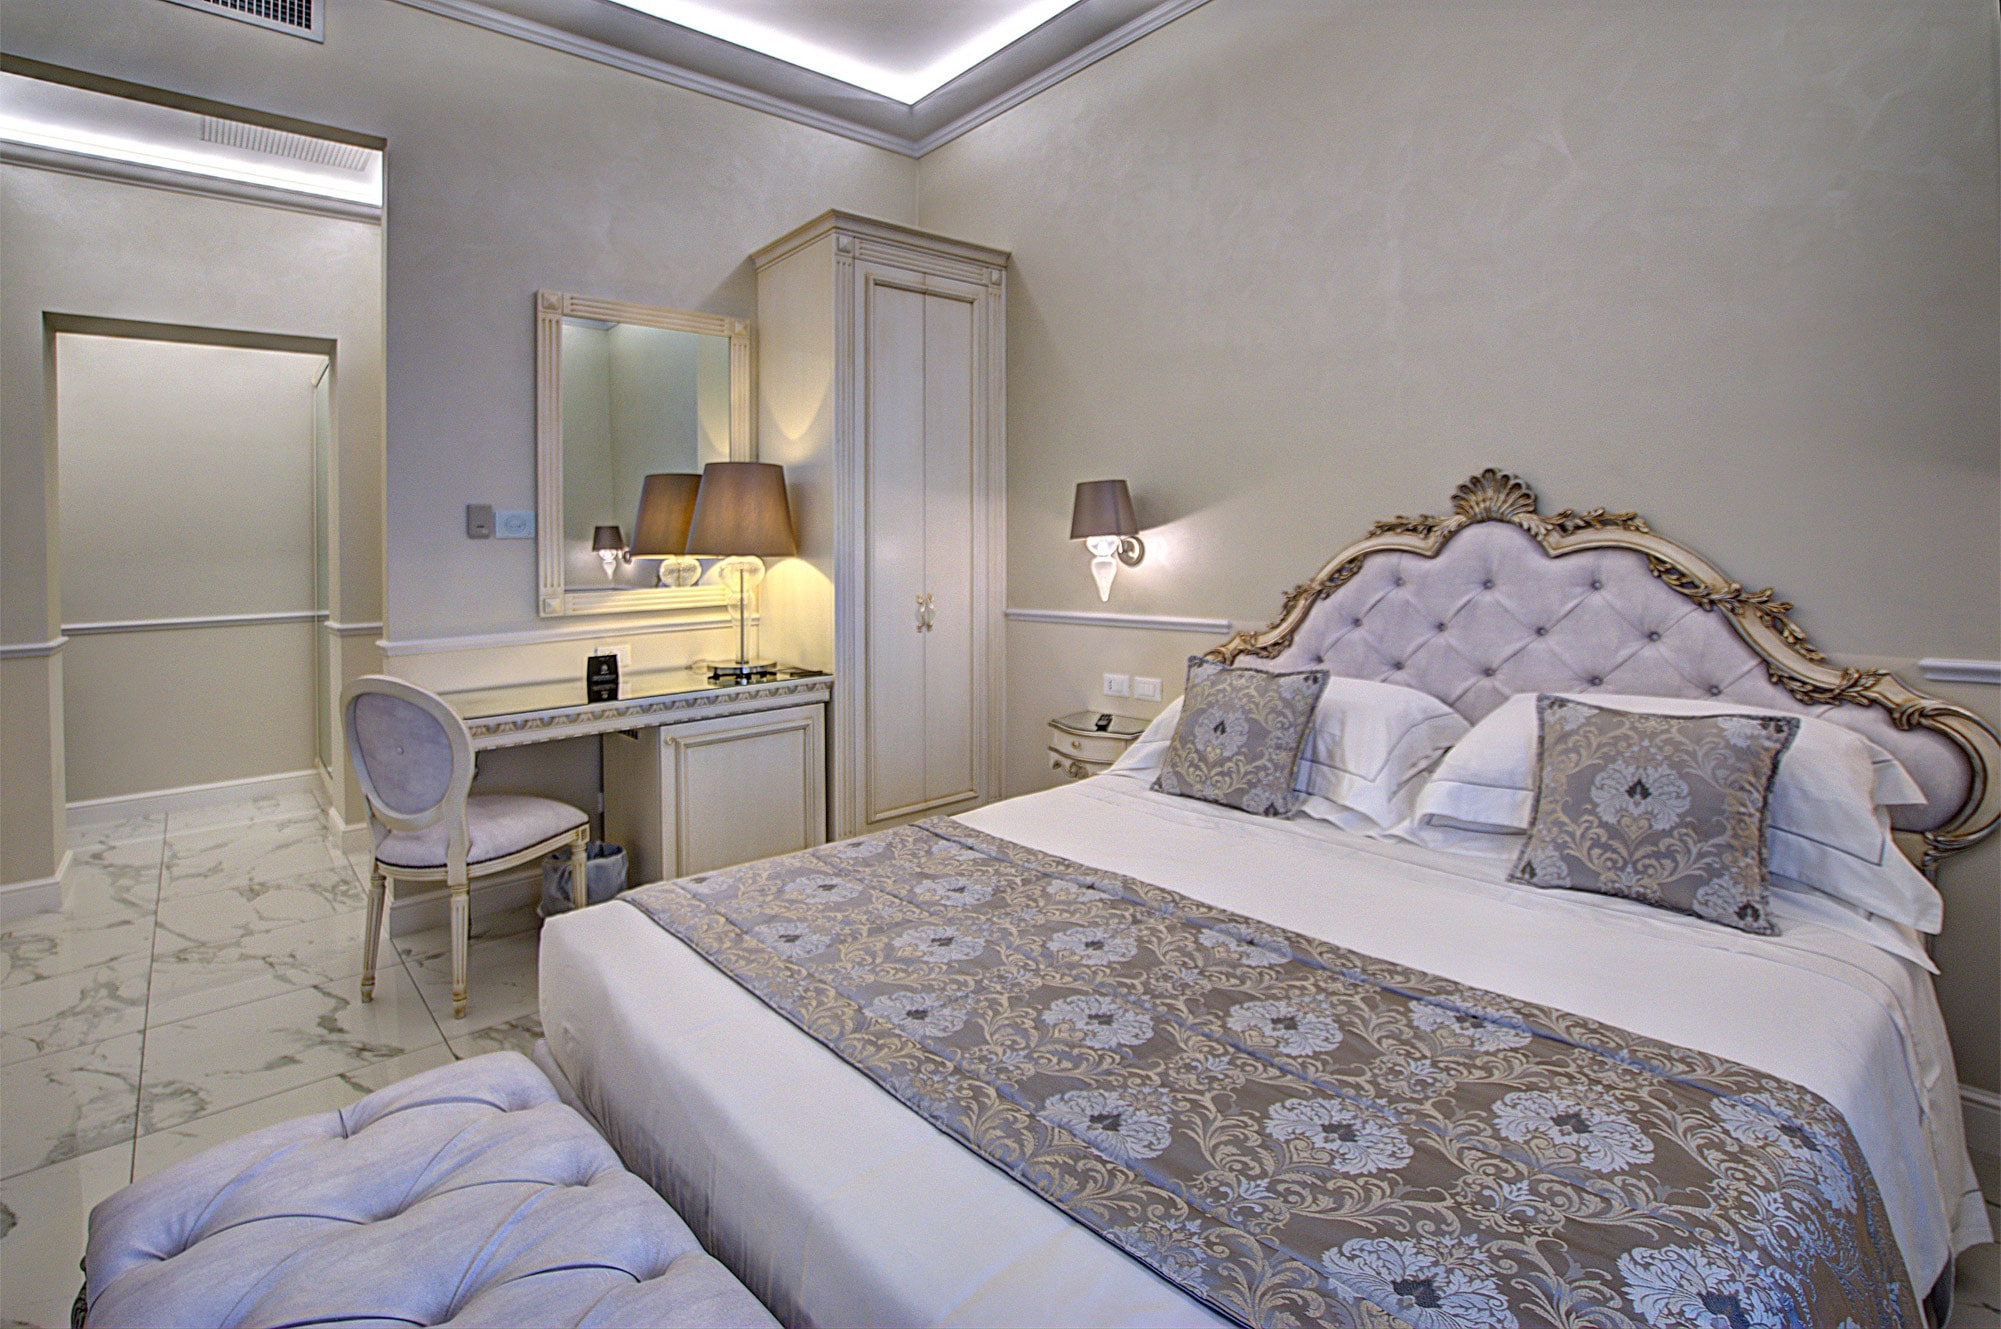 Superio Room Hotel Firenze